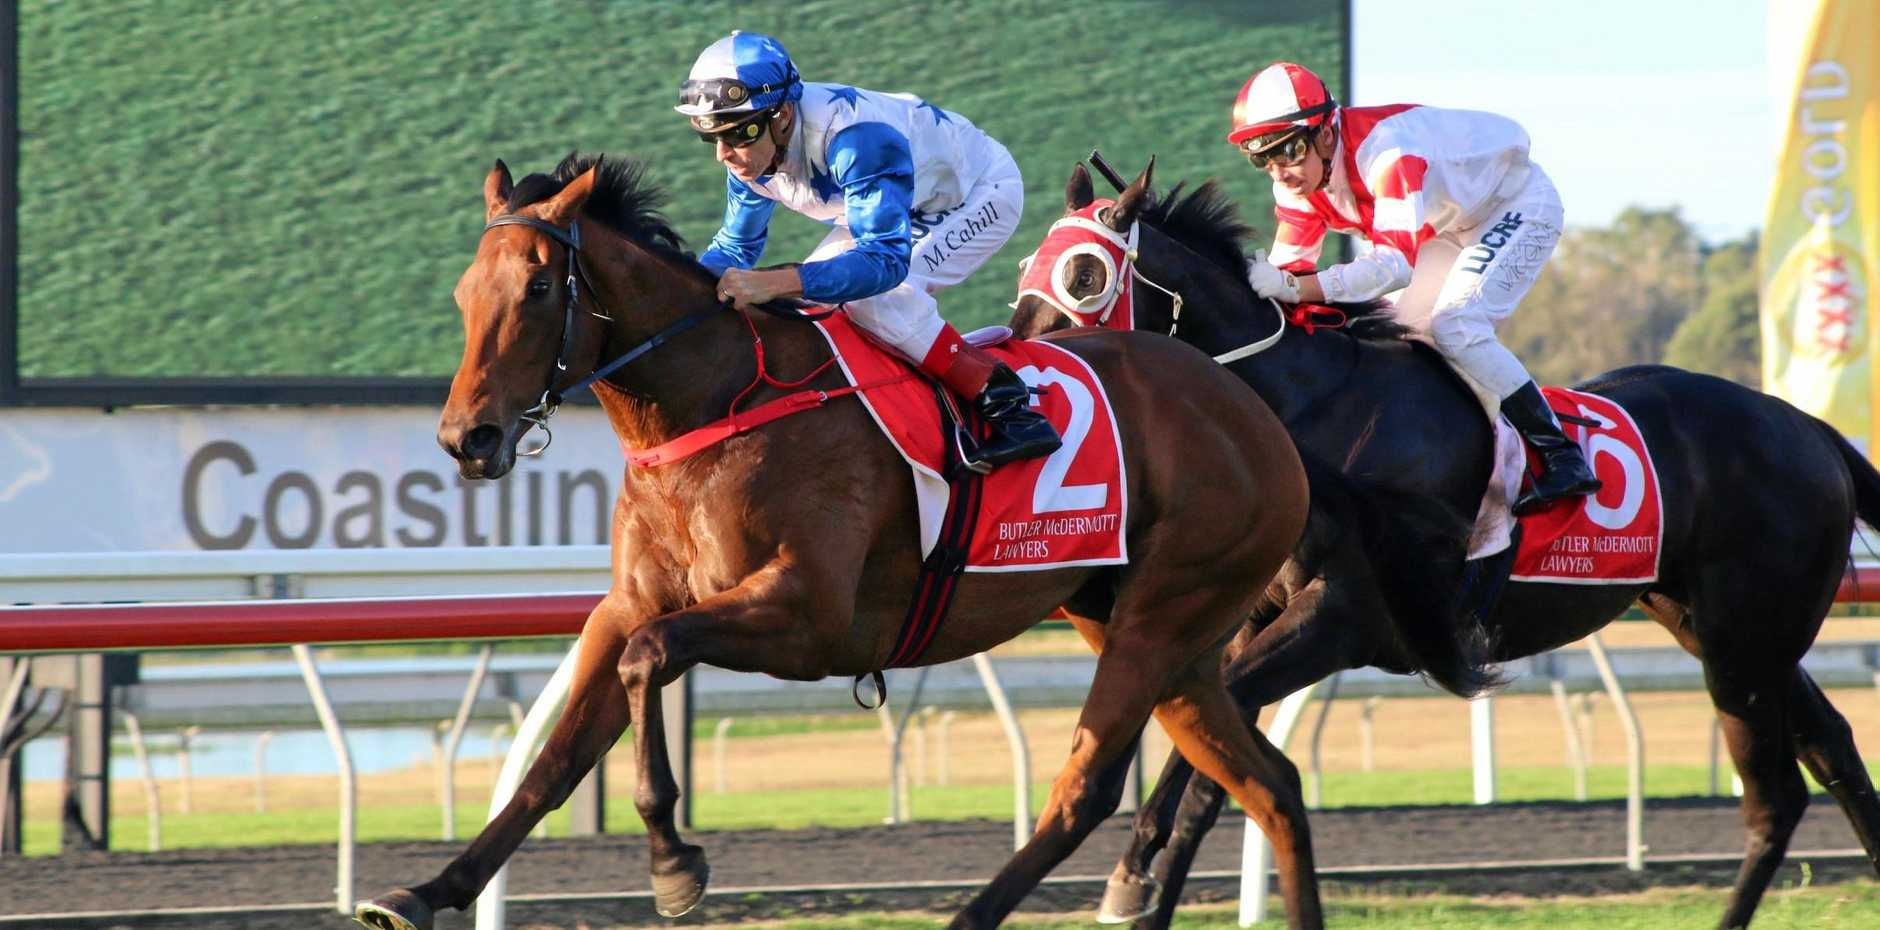 Jockey Michael Cahill pushes Bostonian over the line first in the Sunshine Coast Guineas at the Sunshine Coast Turf Club on Saturday, June 30. Local trainer Garnett Taylor's Bold Assassin crossed in second place